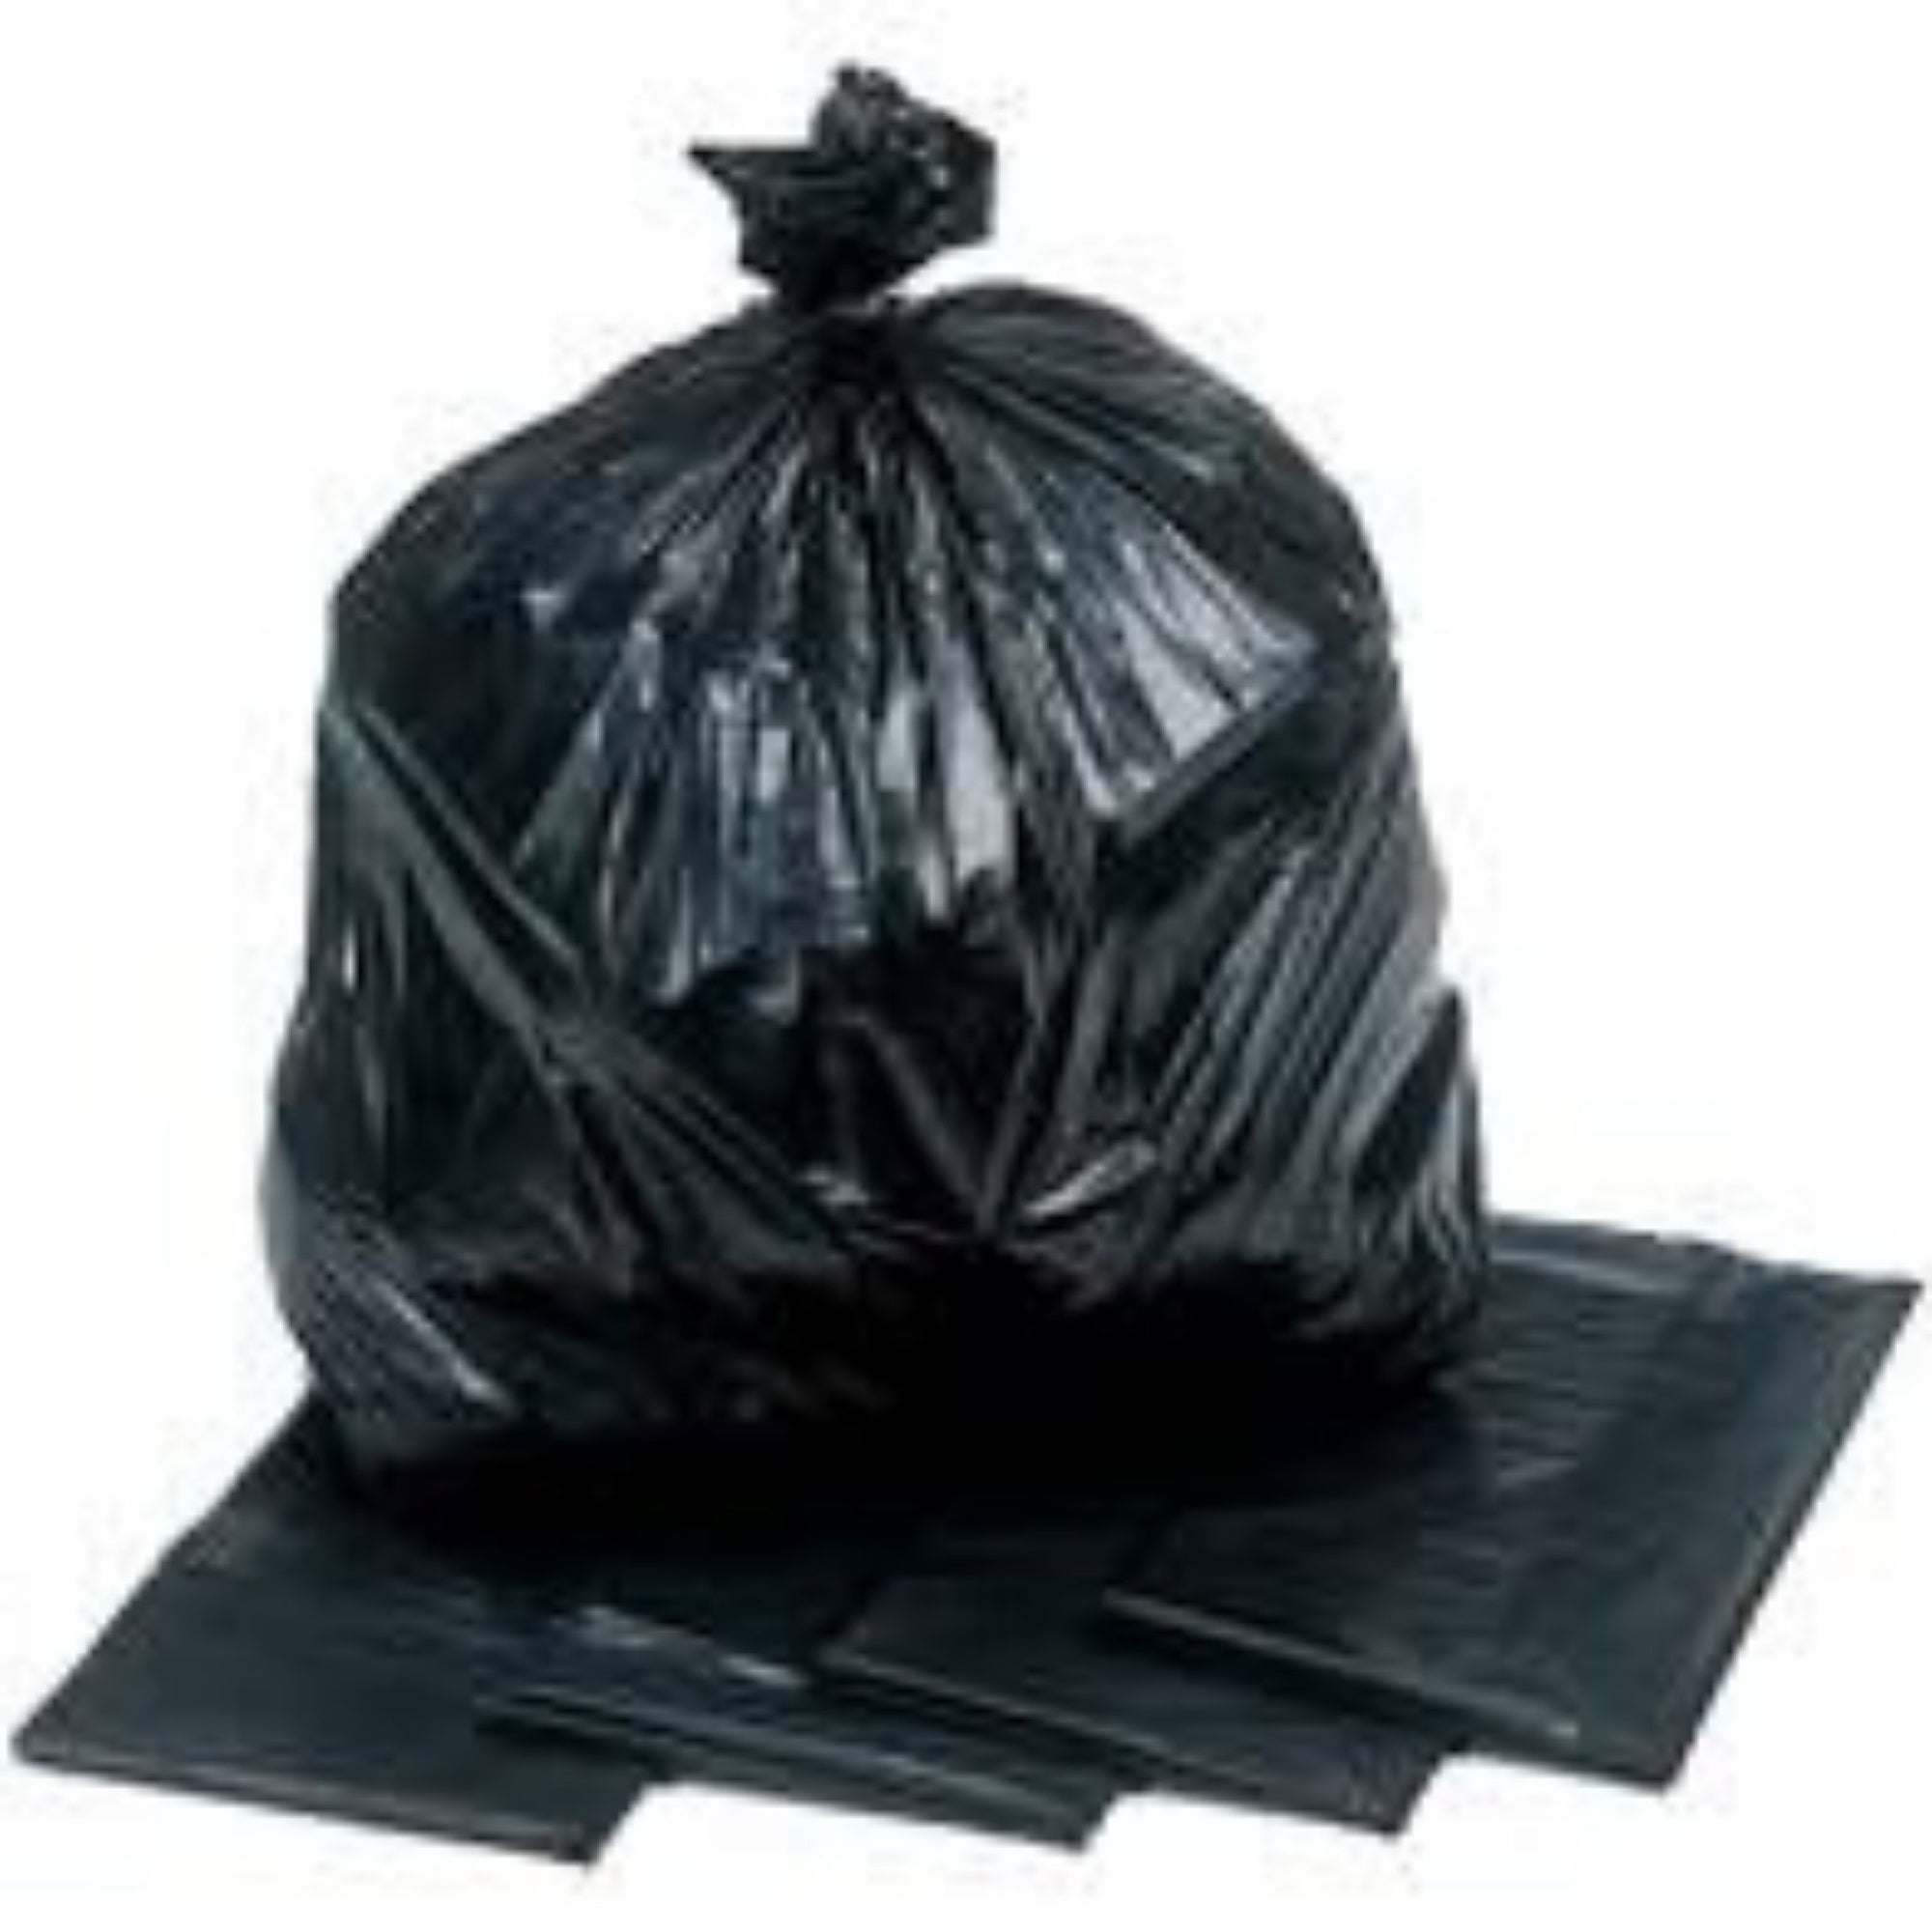 Black Bin Bags Heavy Duty (200/Pkt) - Asian Harvest